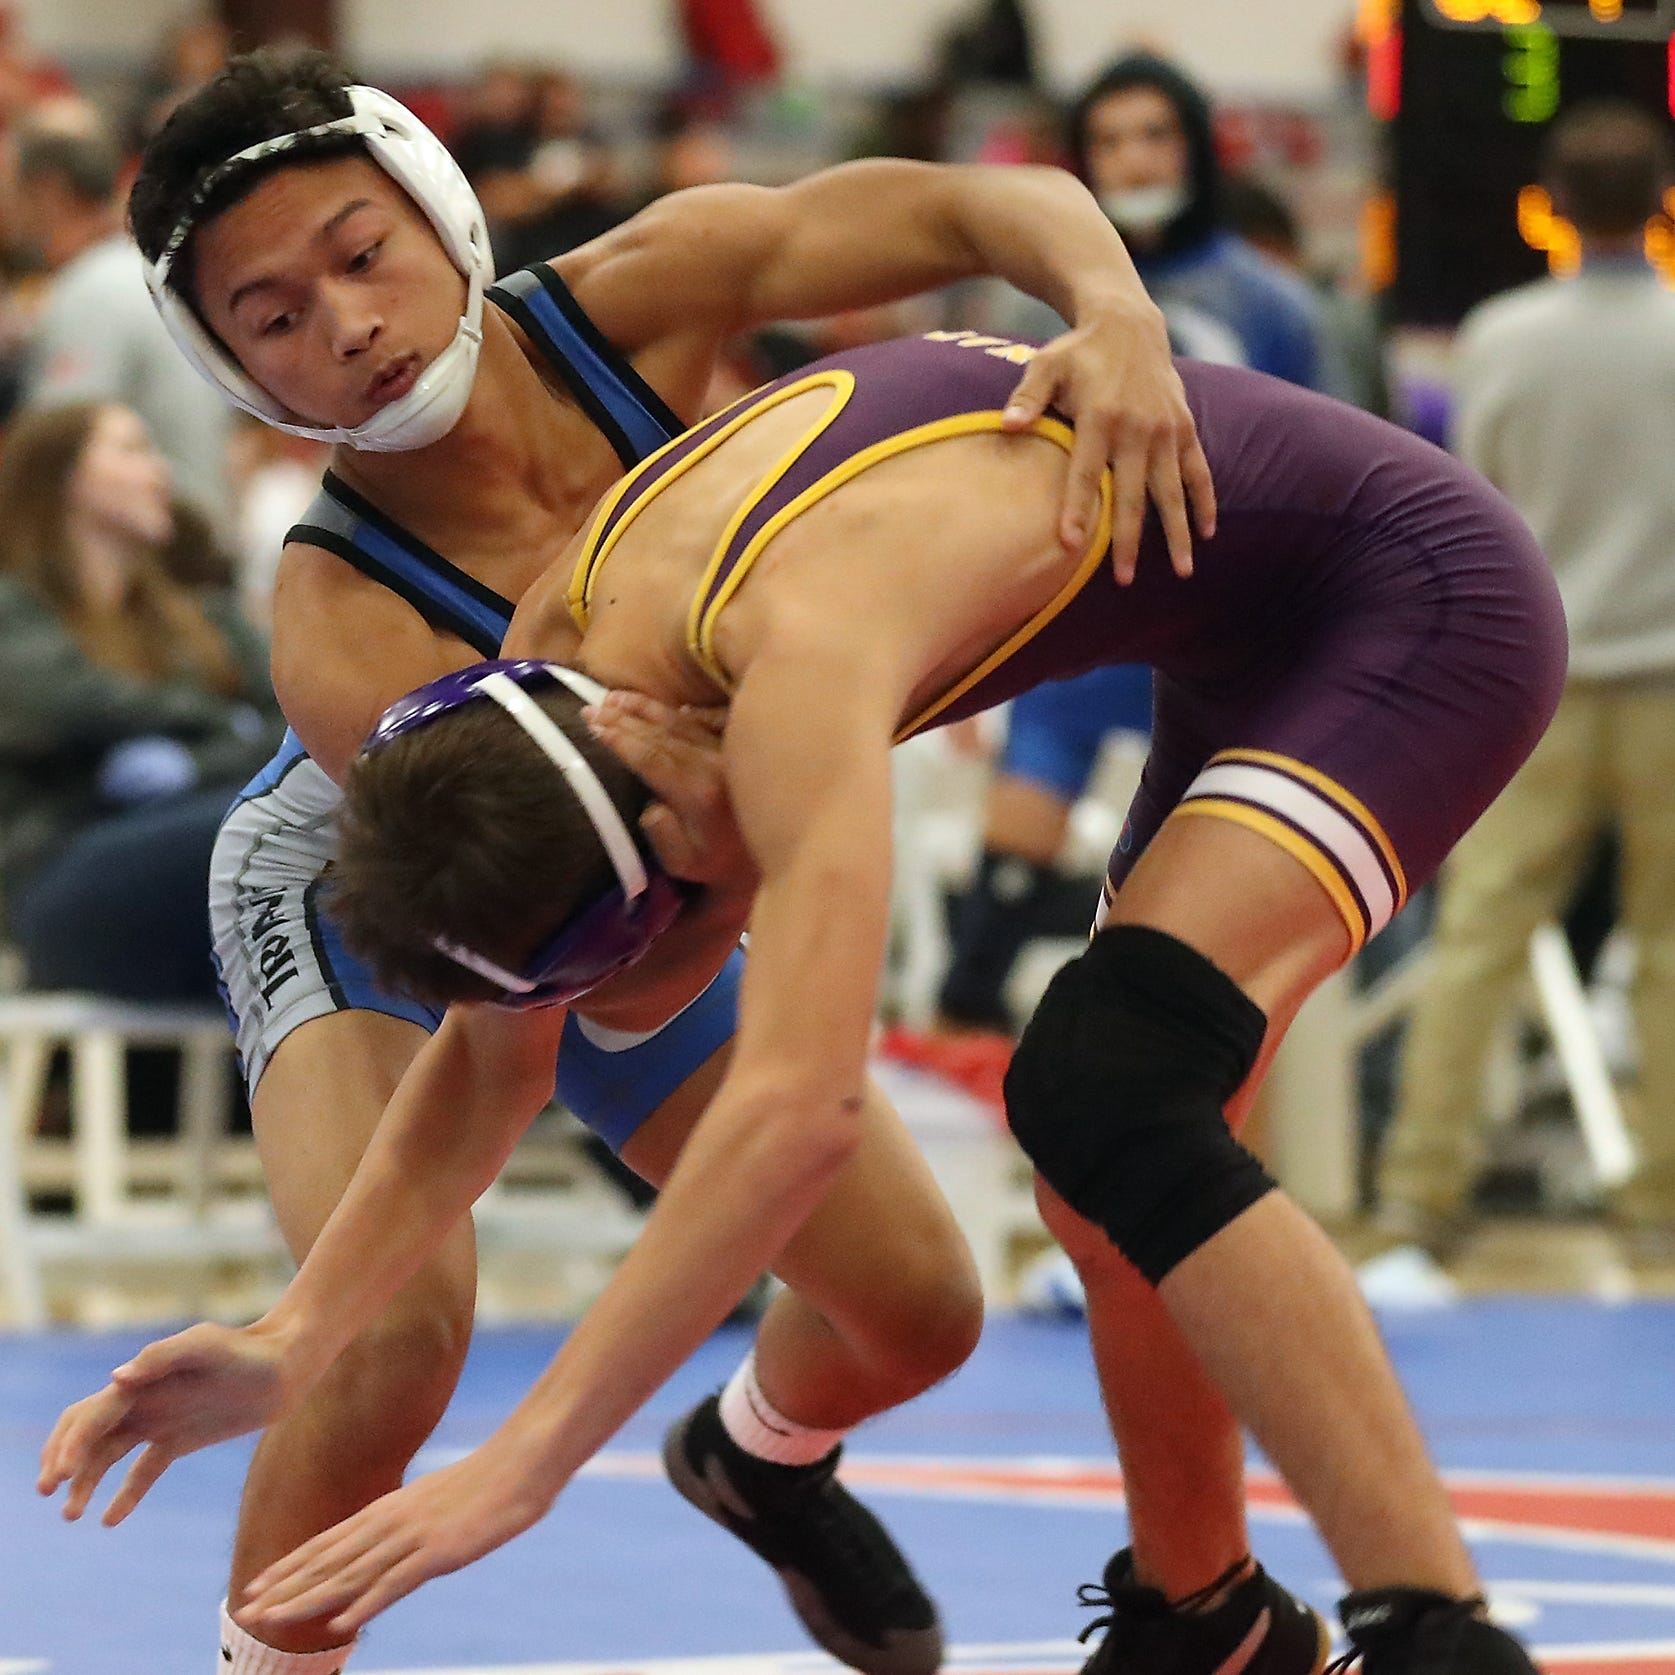 Trojans' Pangelinan gains confidence after Olympic Duals sweep